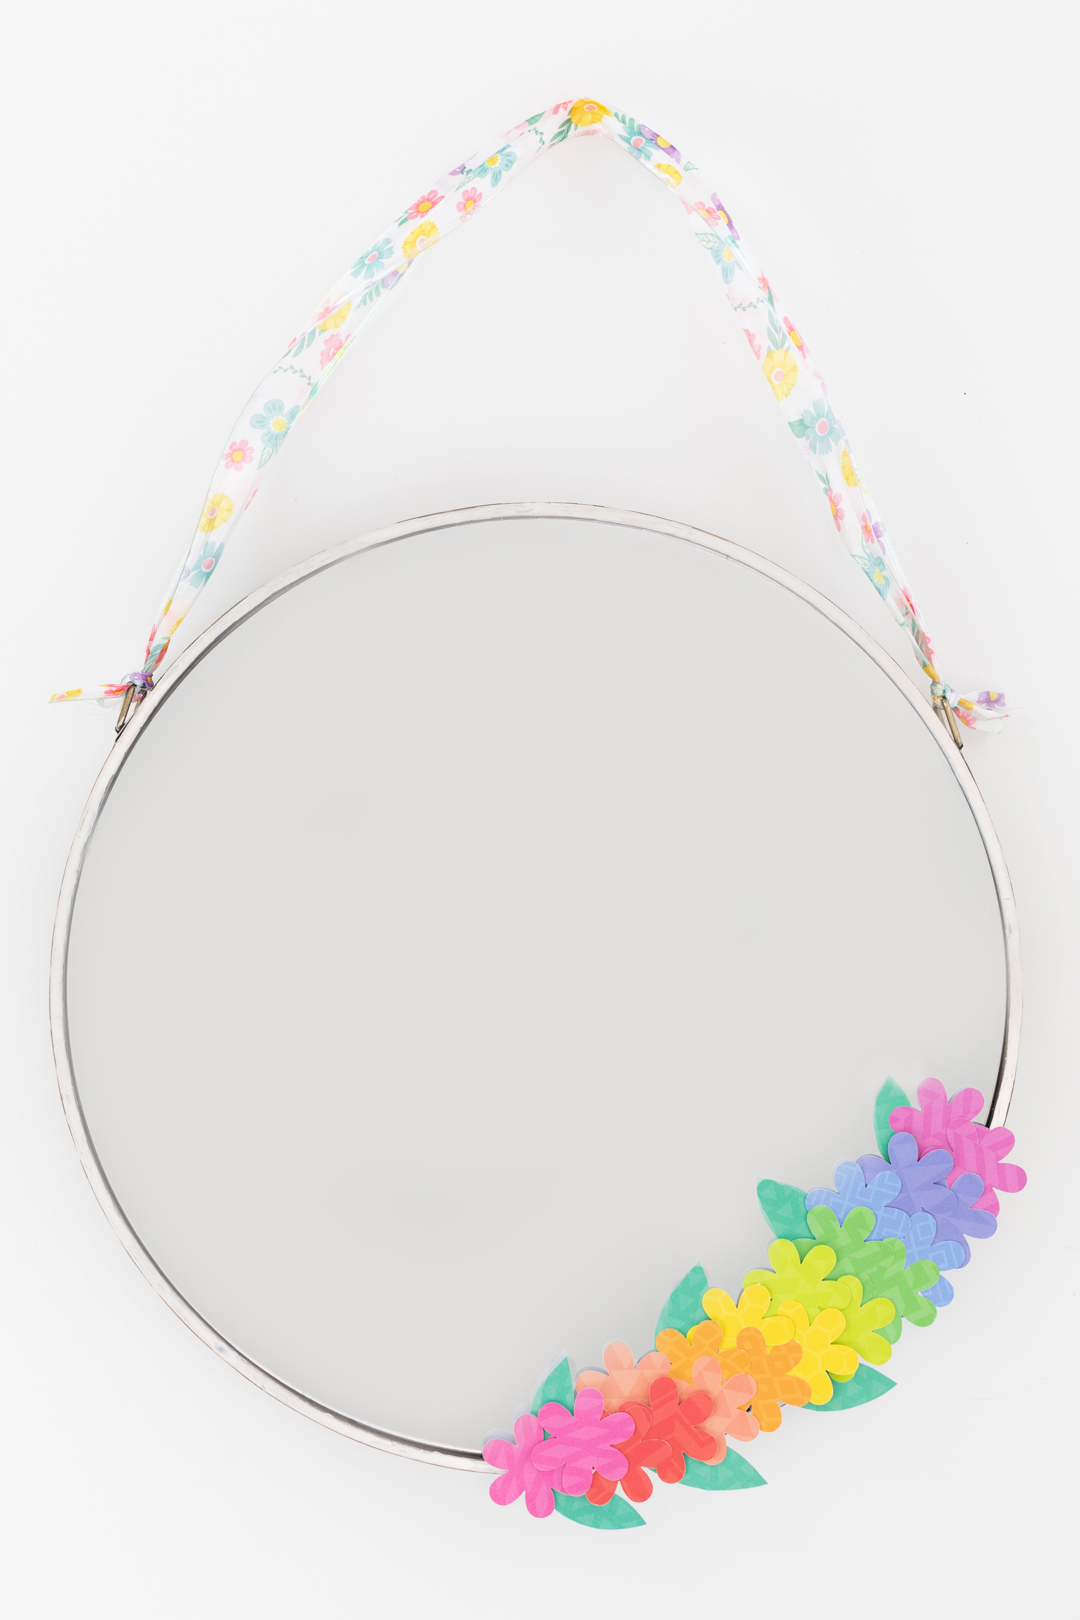 spring mirror craft with paper stationary flowers. floral wreath.